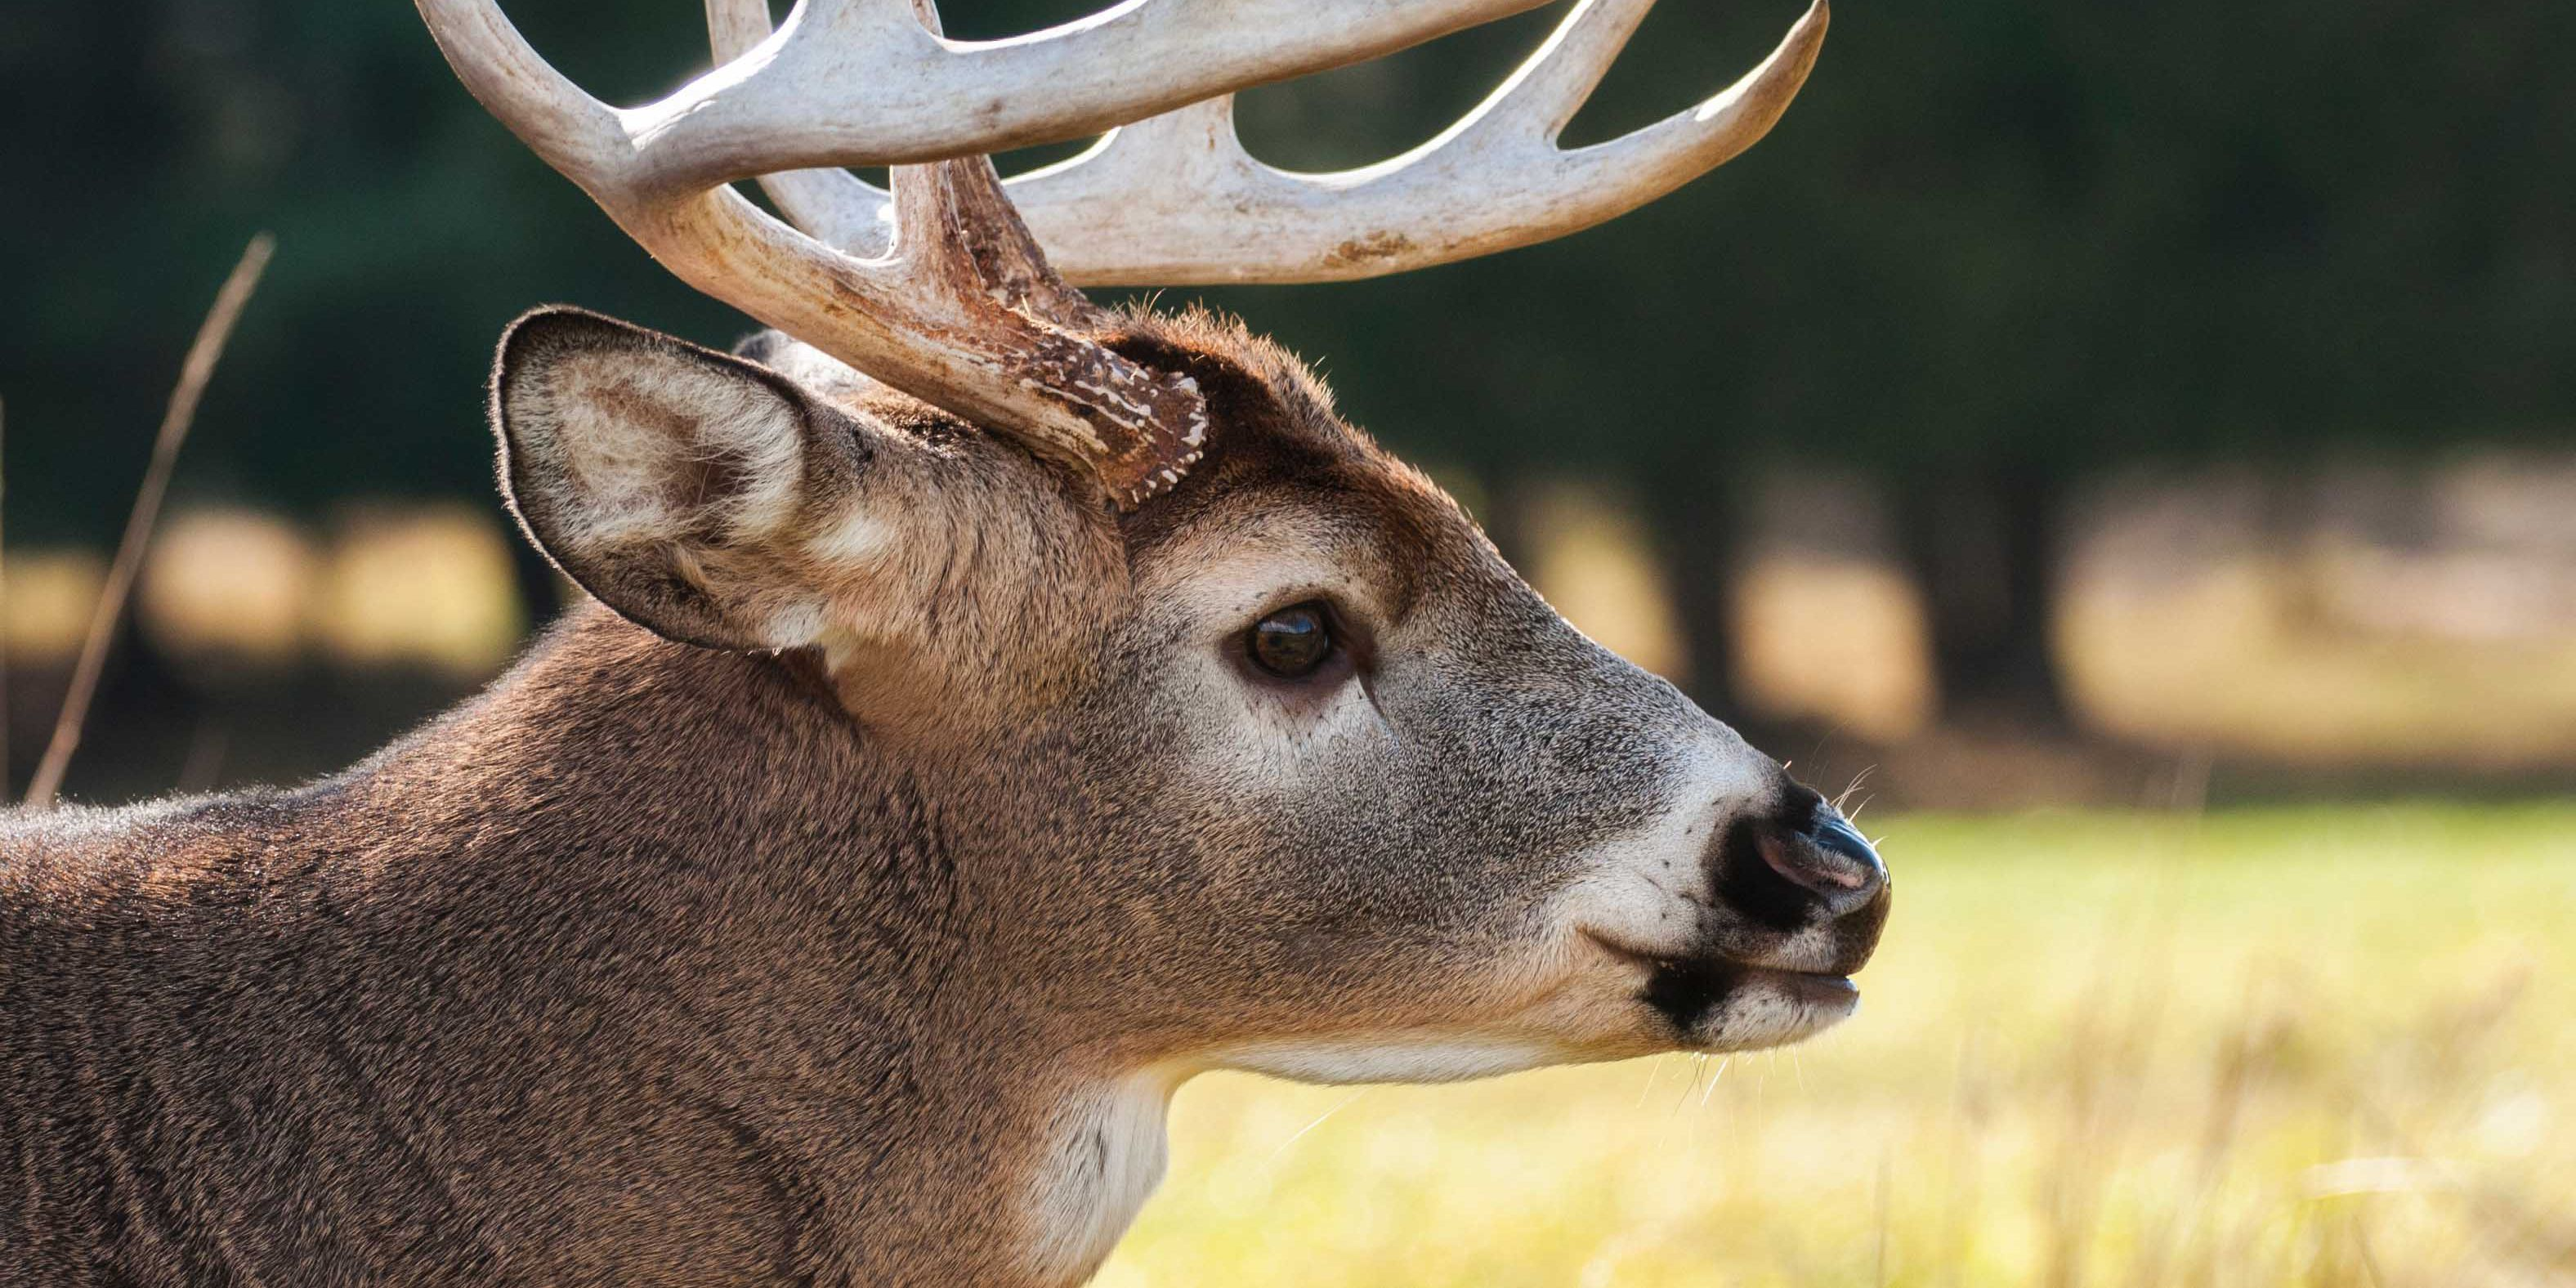 'Zombie deer disease' has impacted wildlife in 24 states